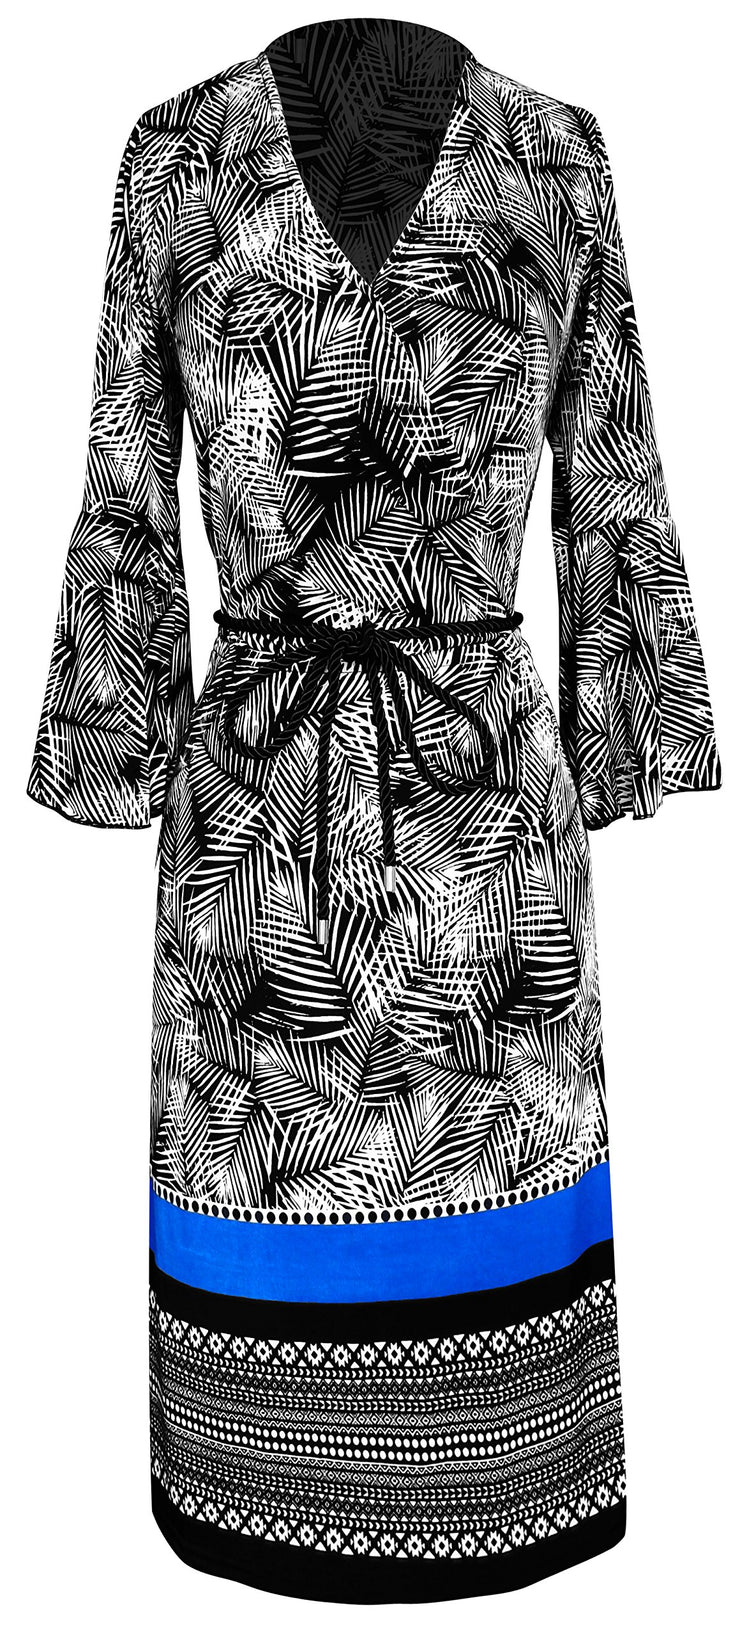 Boho Tribal Surplice Mid-Length Shift Dress With 3/4 Bell Sleeves (Large, Black & White)